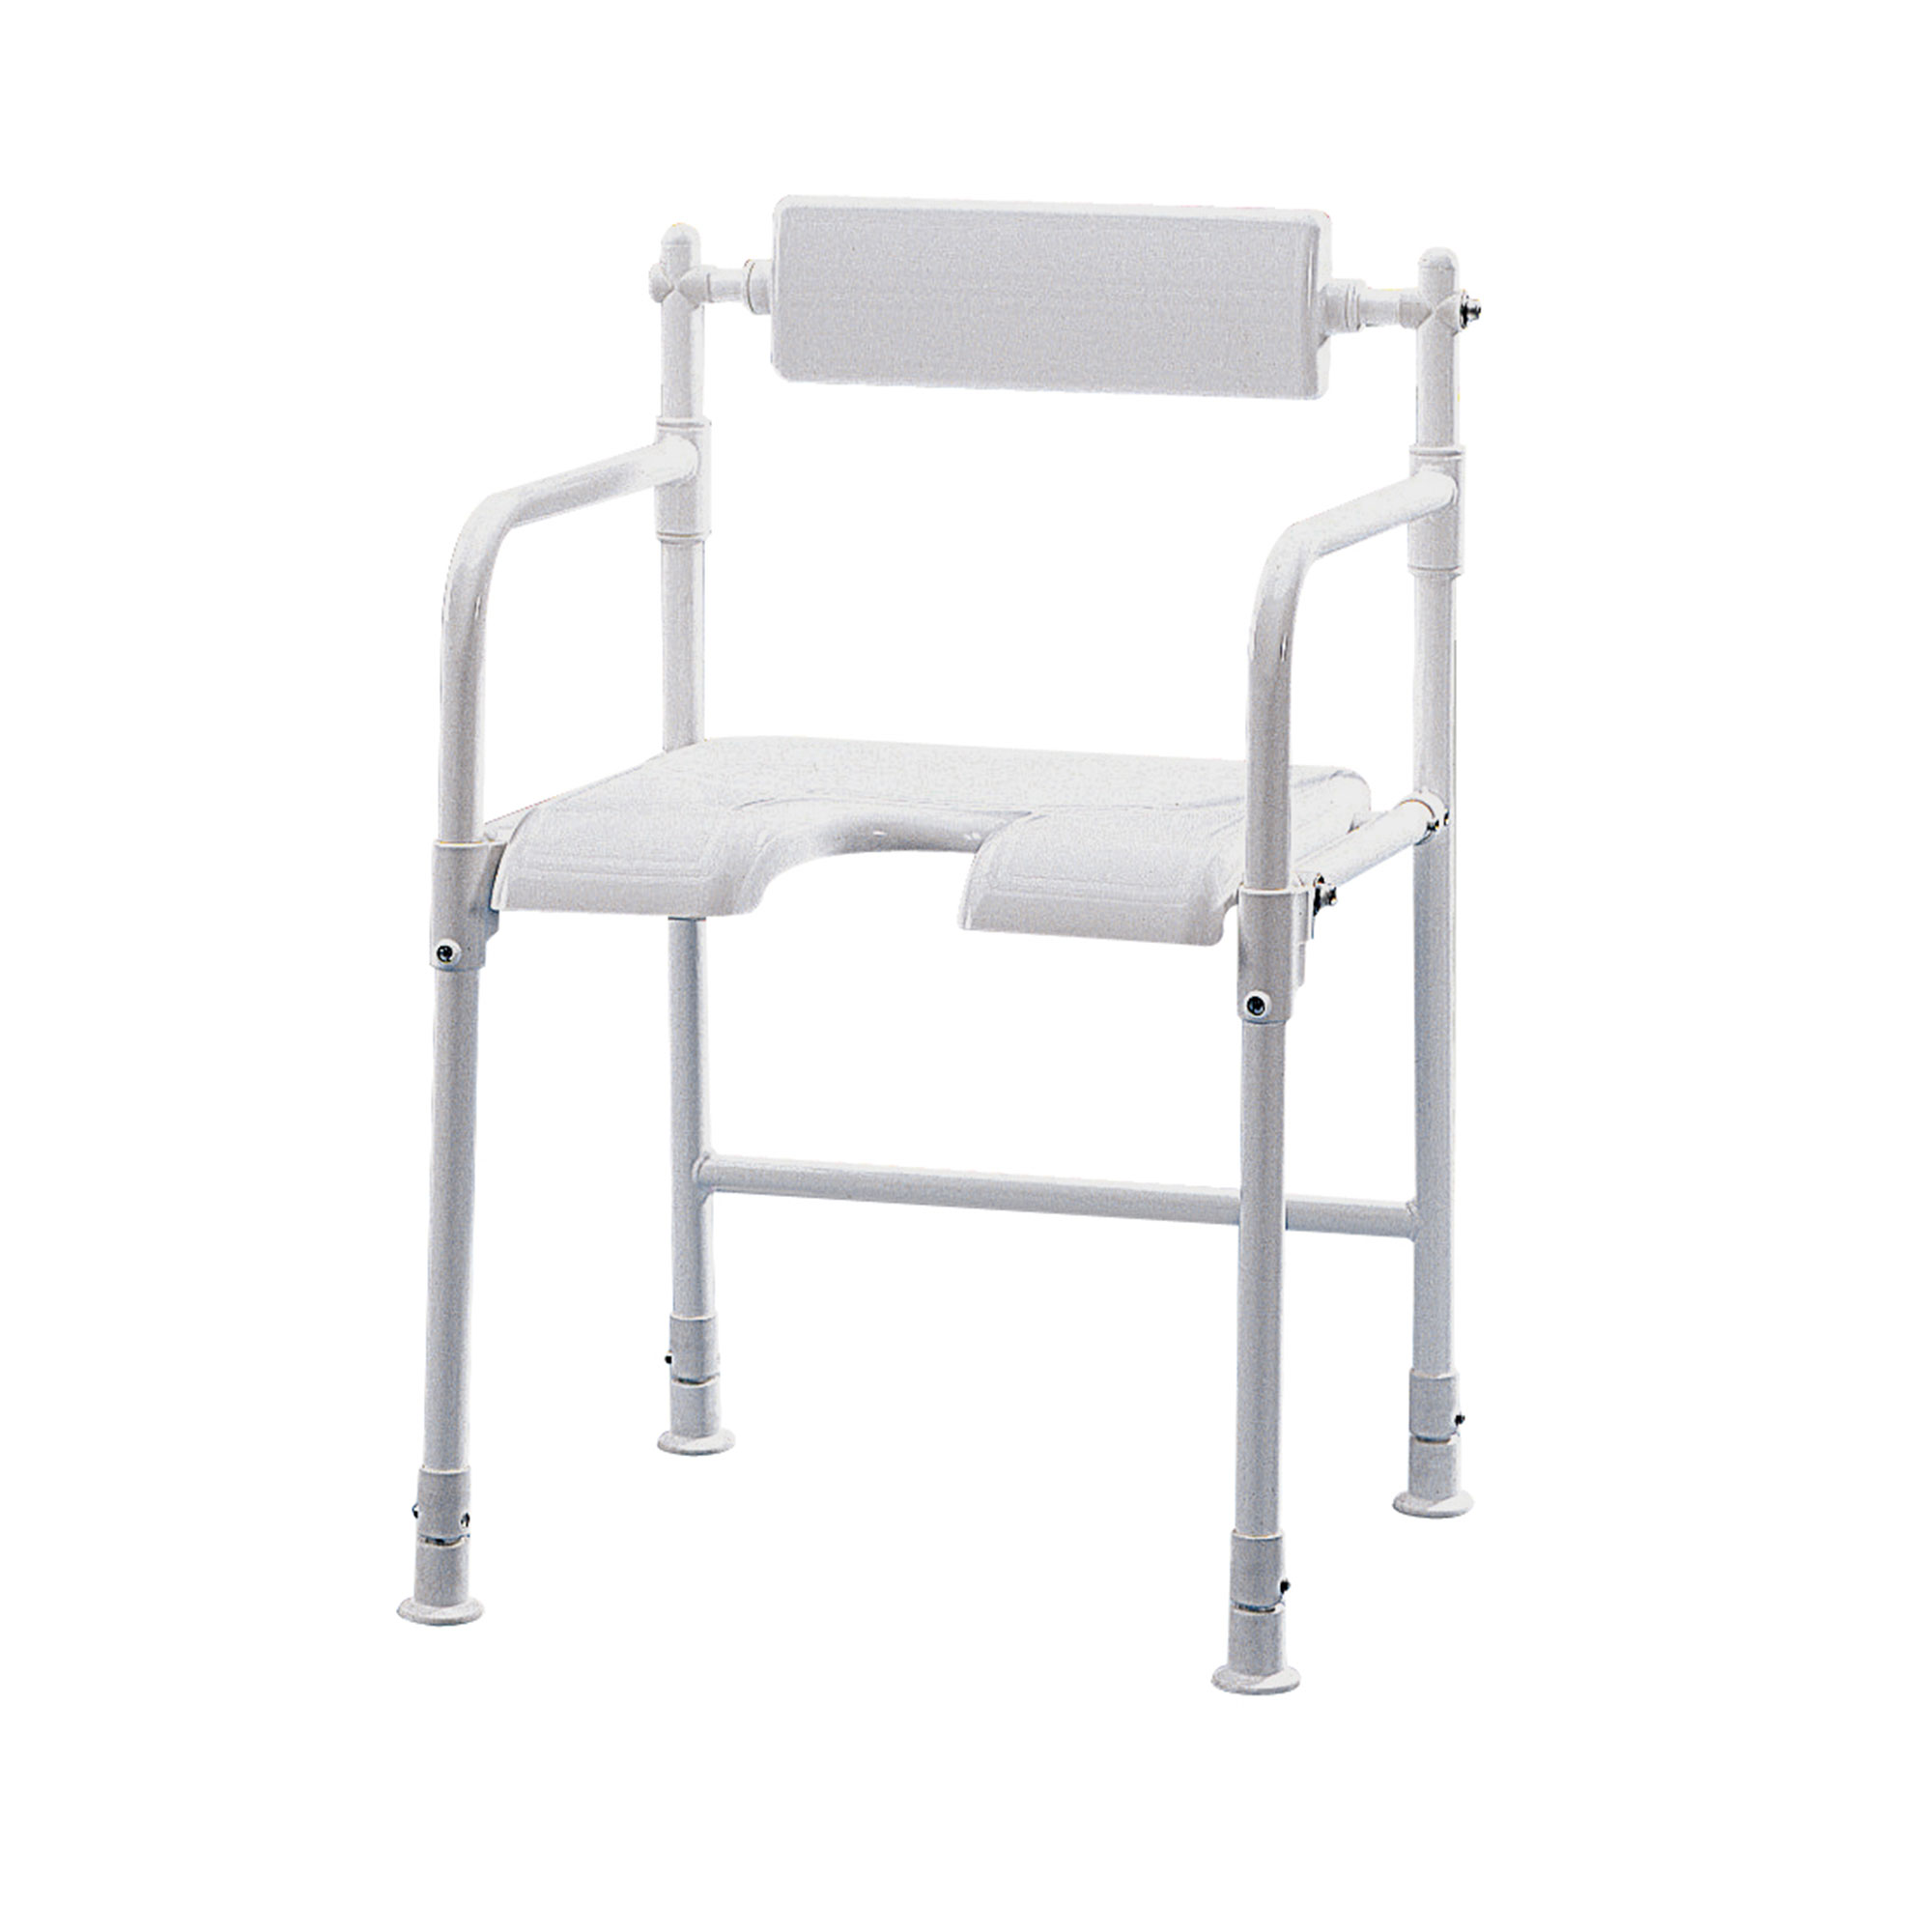 showchaircom propelled self shower chair wide wheelchairs wheelchair commodes